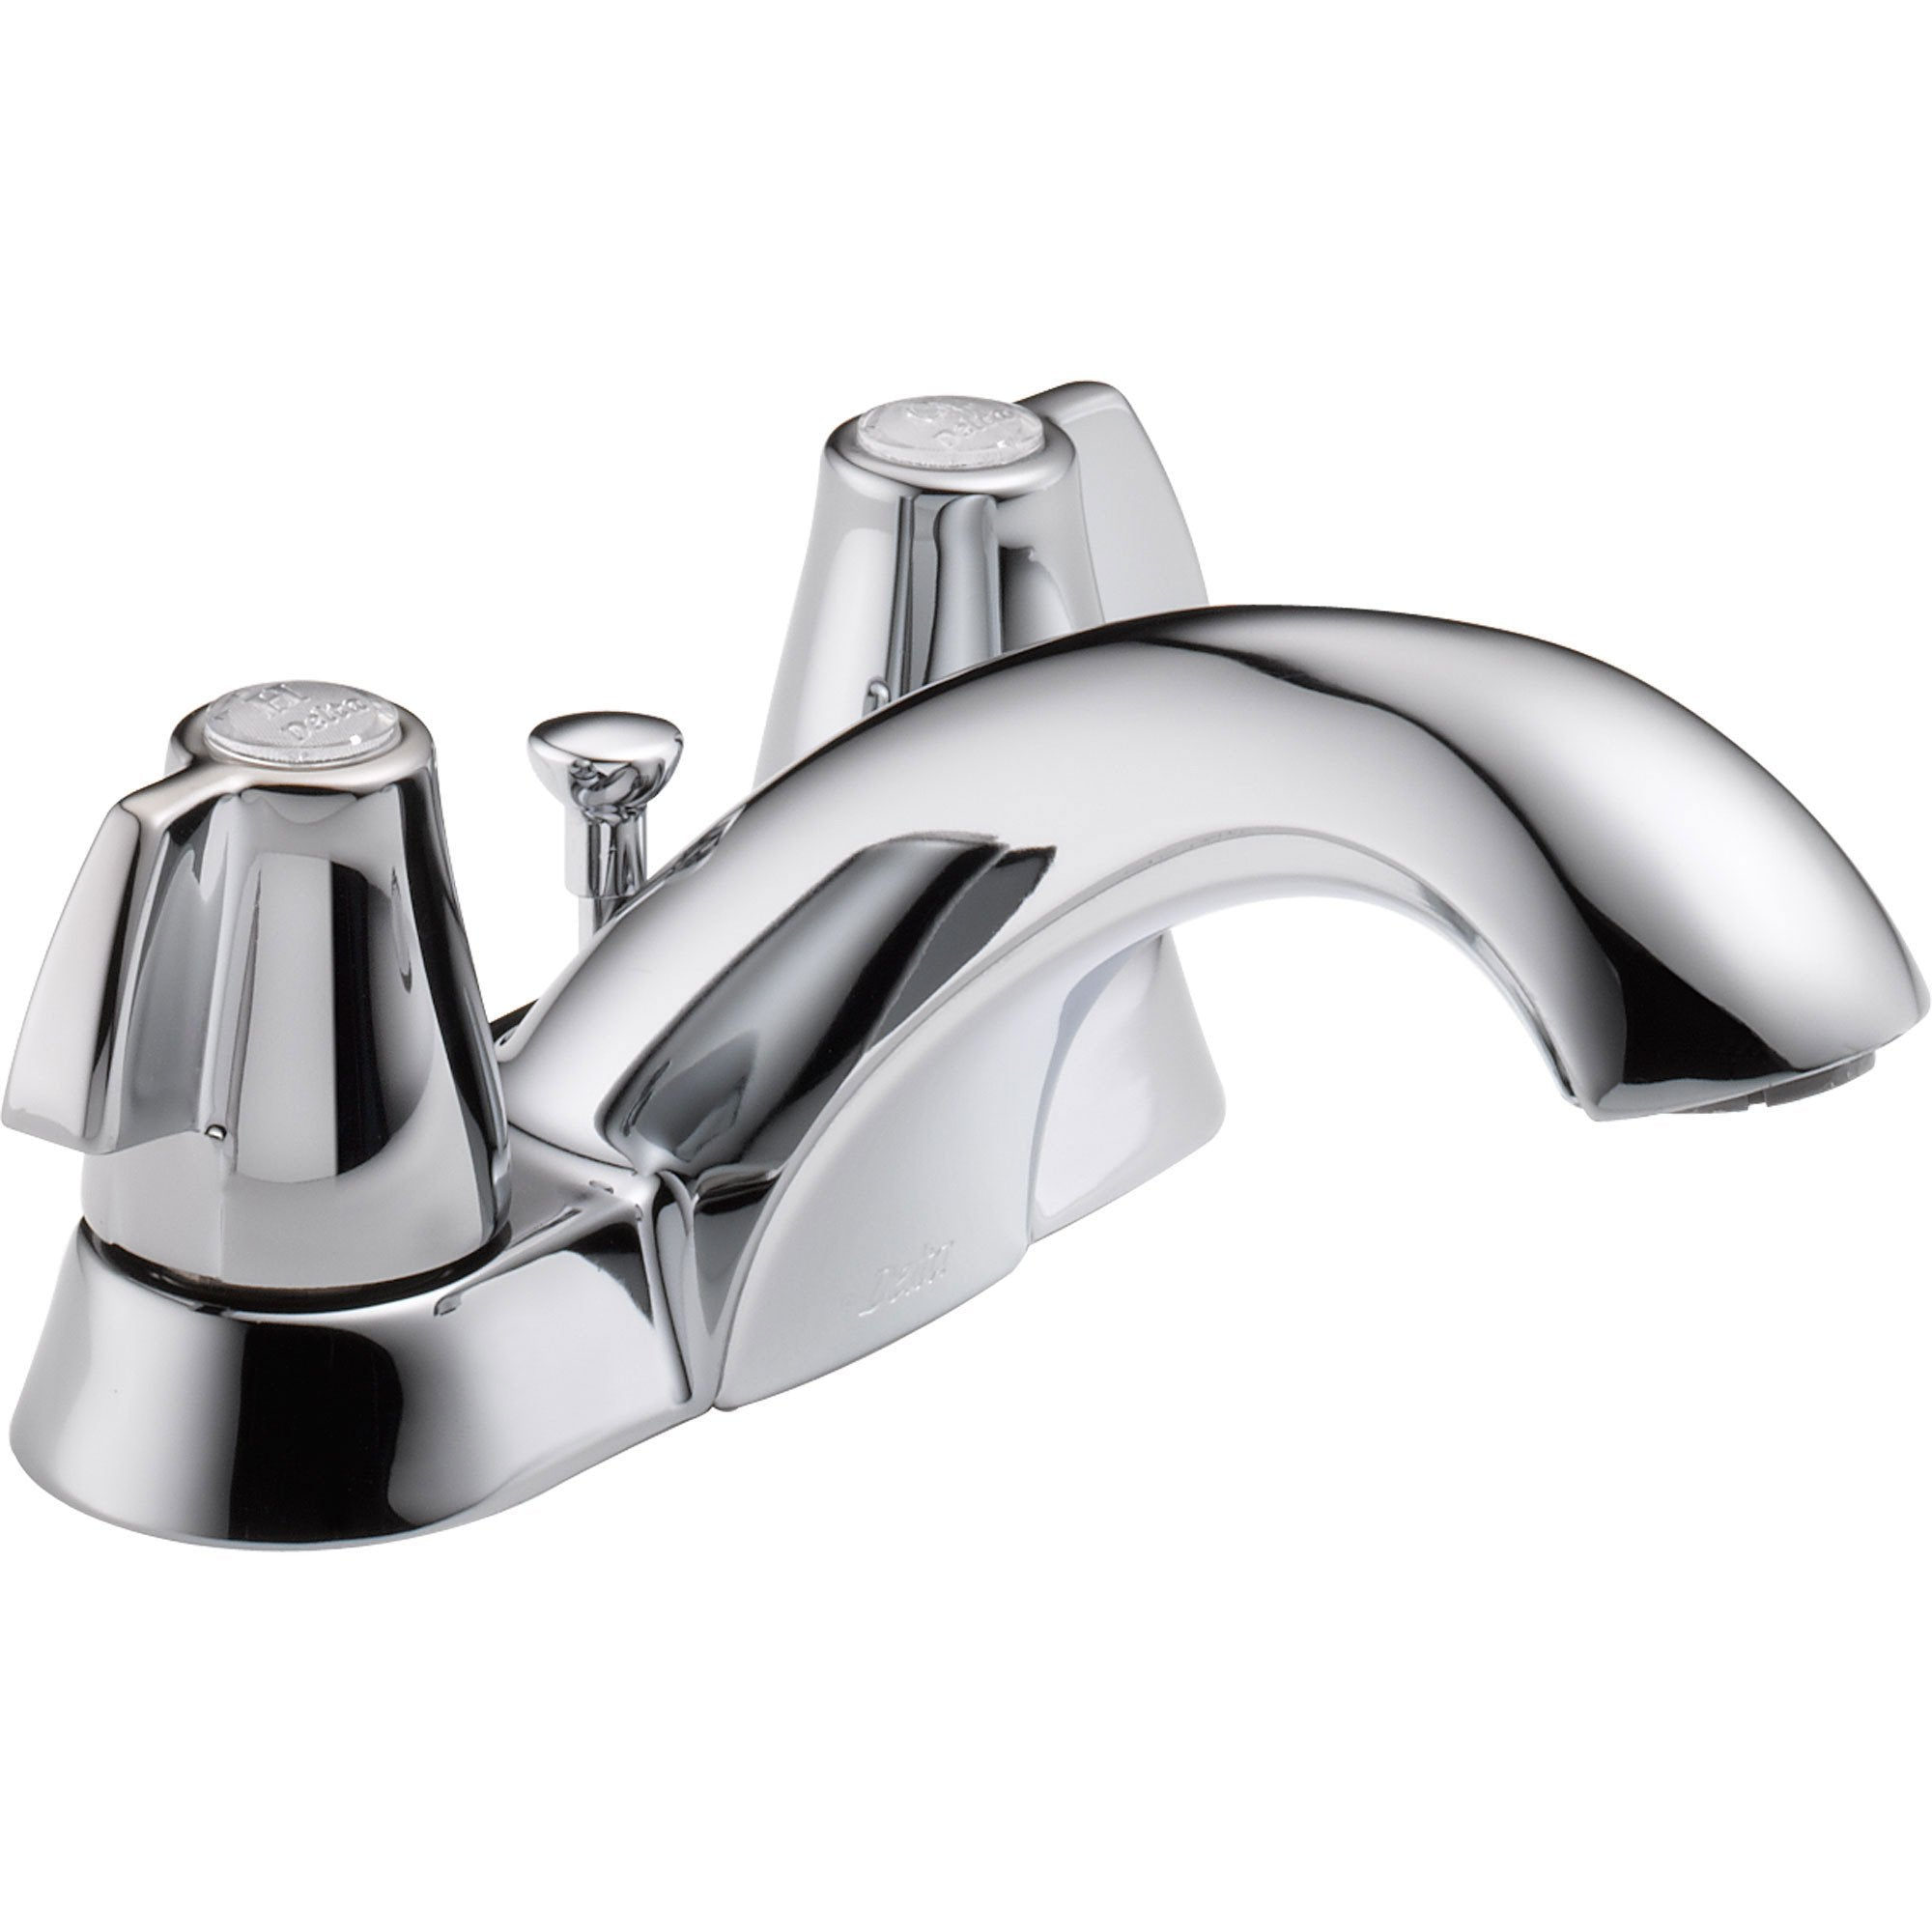 "Delta Classic 4"" Centerset Chrome 2-Handle Mid Arc Bathroom Sink Faucet 474256"